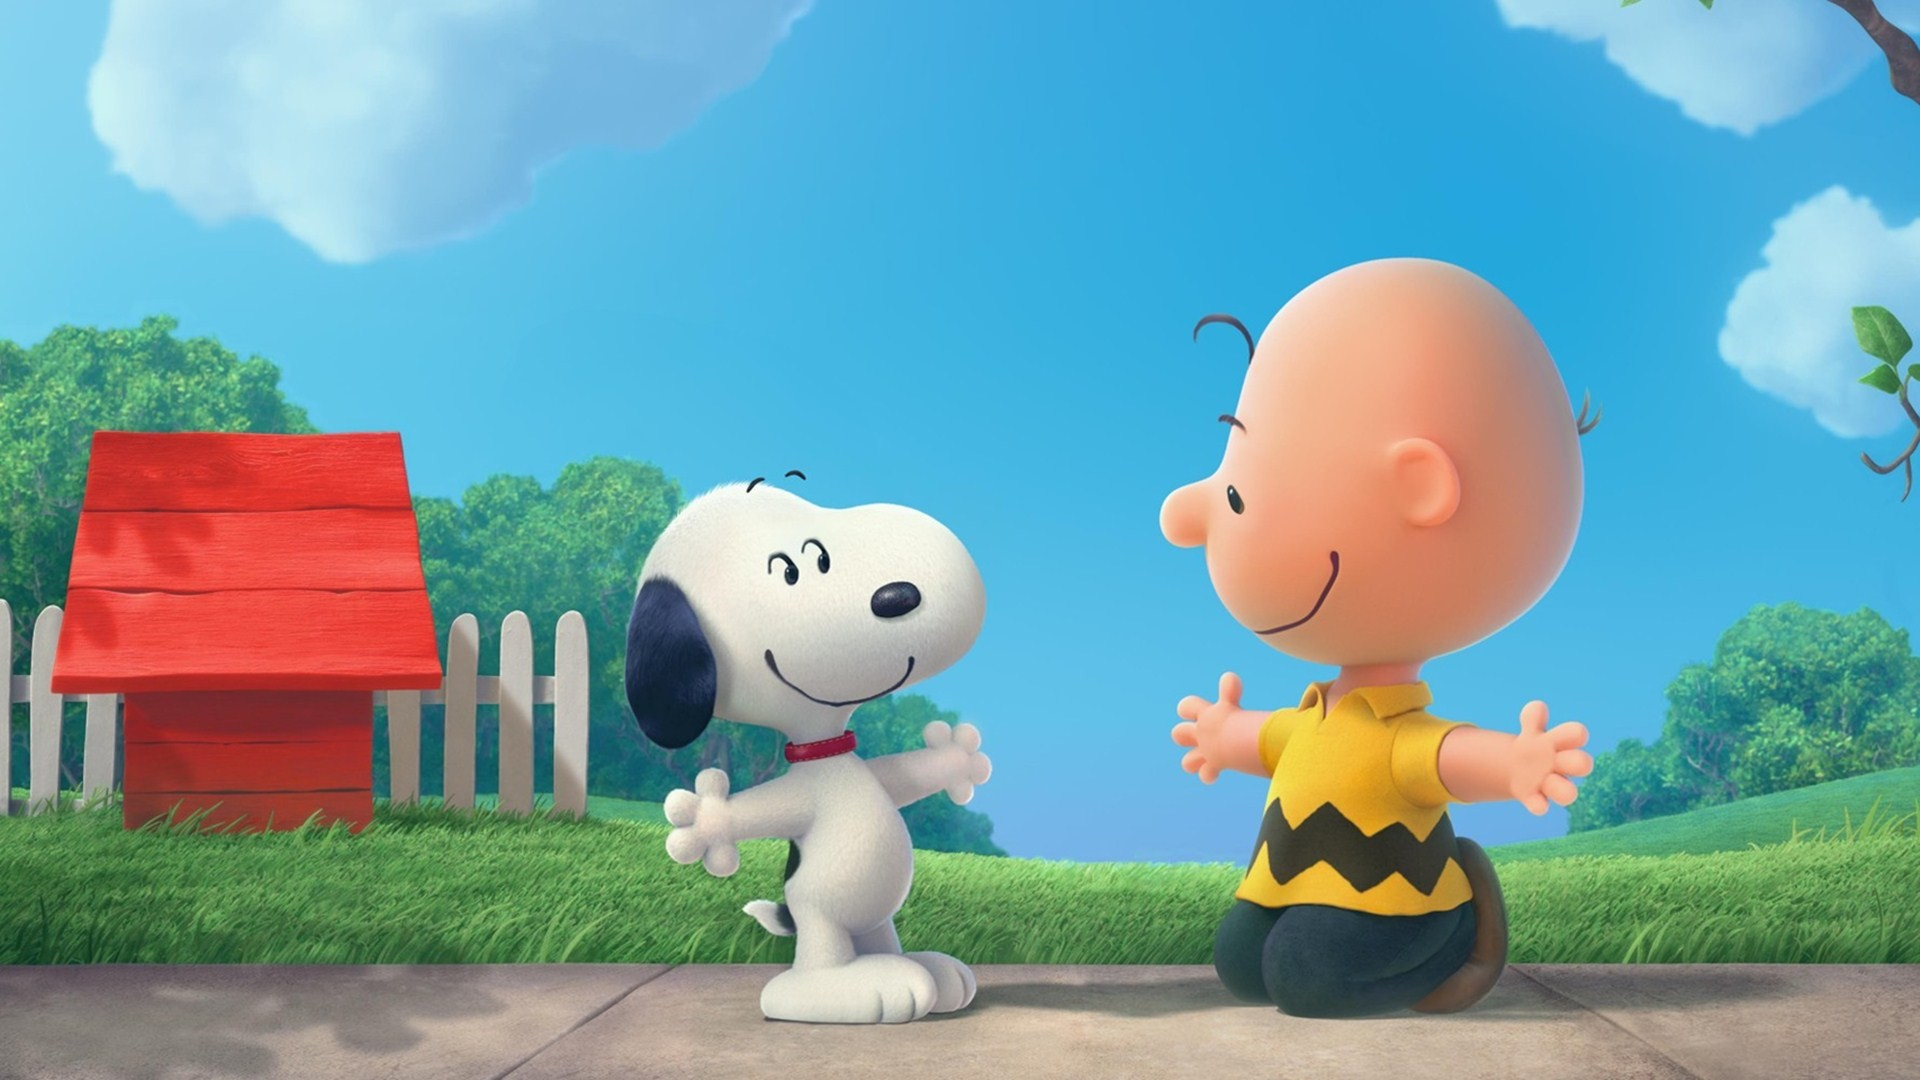 1920x1080 Free Download The Peanuts Movie Snoopy And Charlie Brown Wallpaper .